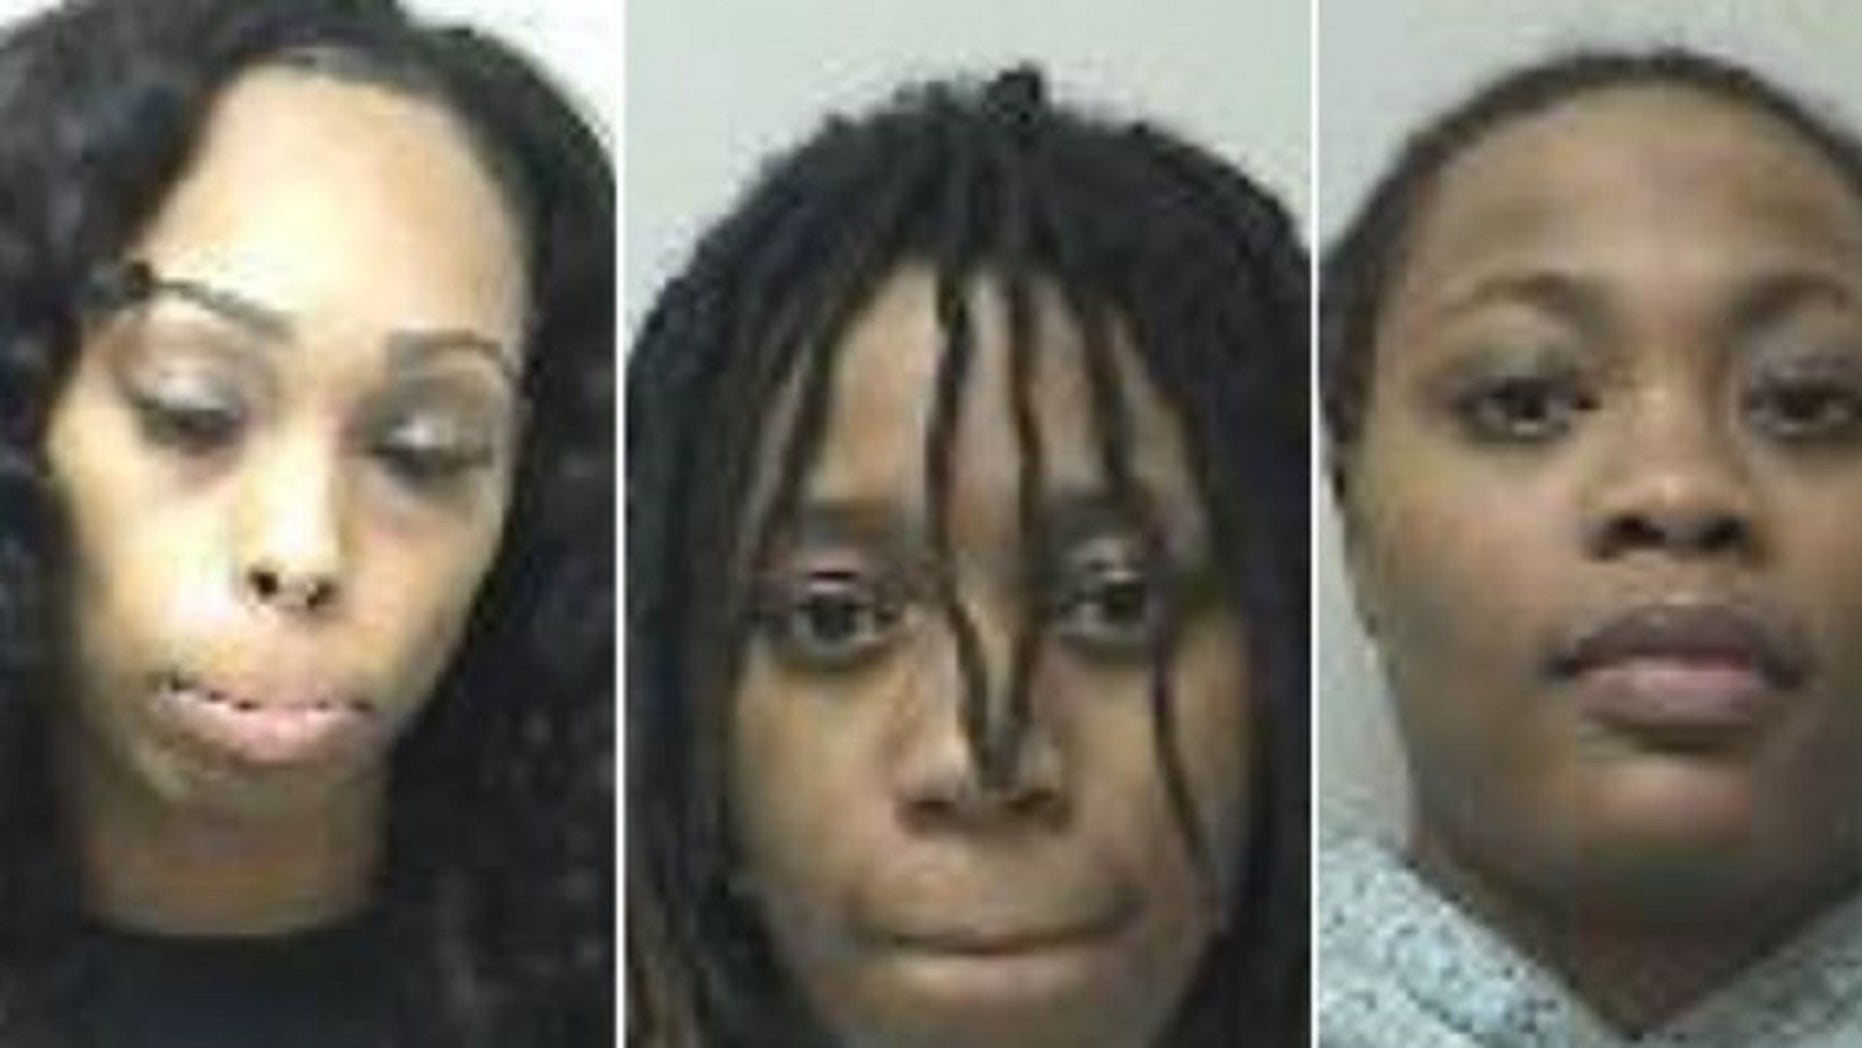 Three adults, pictured, and a 17-year-old were arrested after a mall fight broke out in Connecticut, authorities said. The adults were19-year-old Dynastee McCoy from Wethersfield, 18-year-old Inaija Williams from Hartford, and 18-year-old Naejza Bares from New Britain, police said.